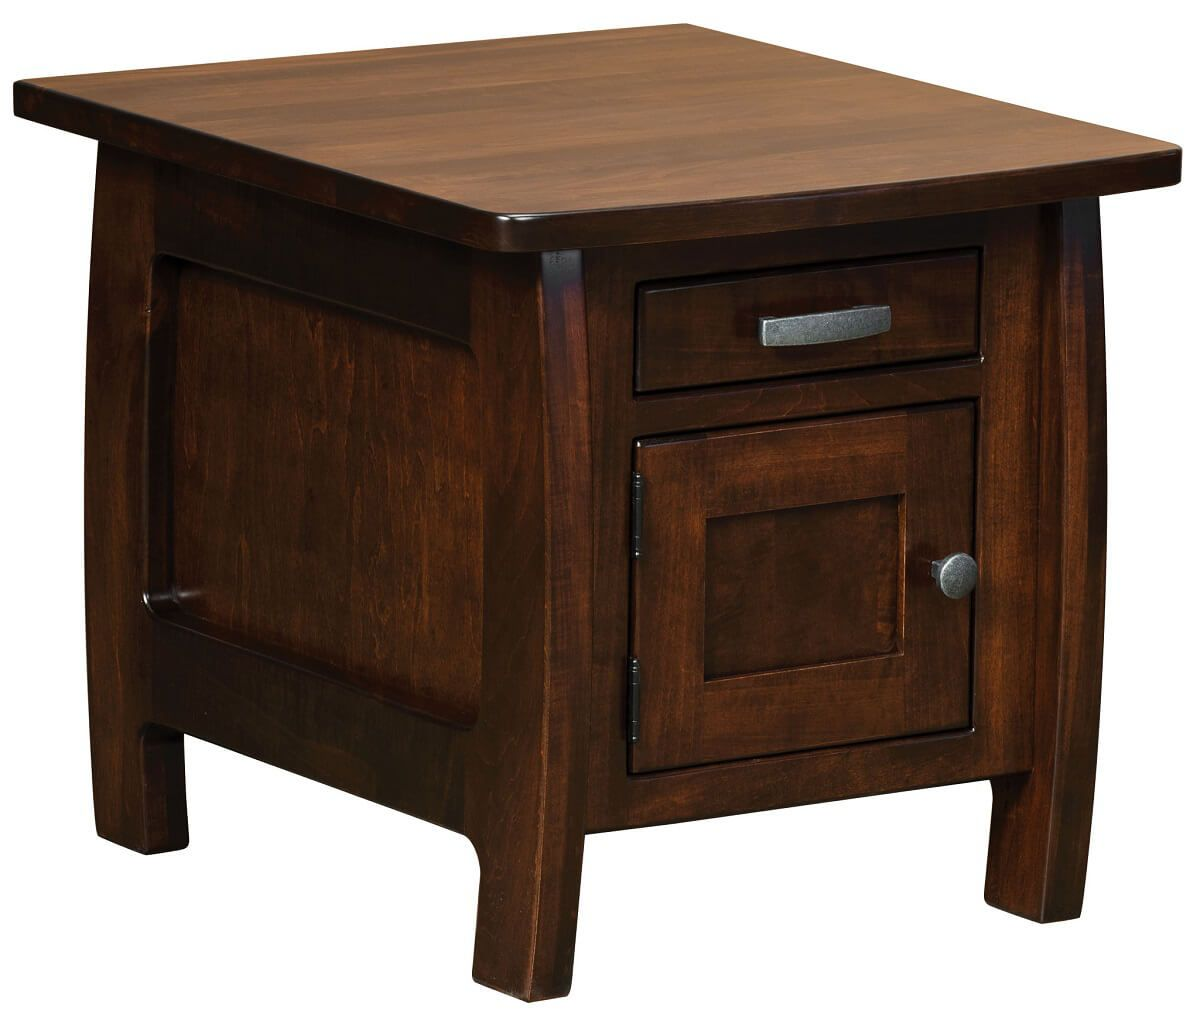 Okanogan Storage End Table Countryside Amish Furniture